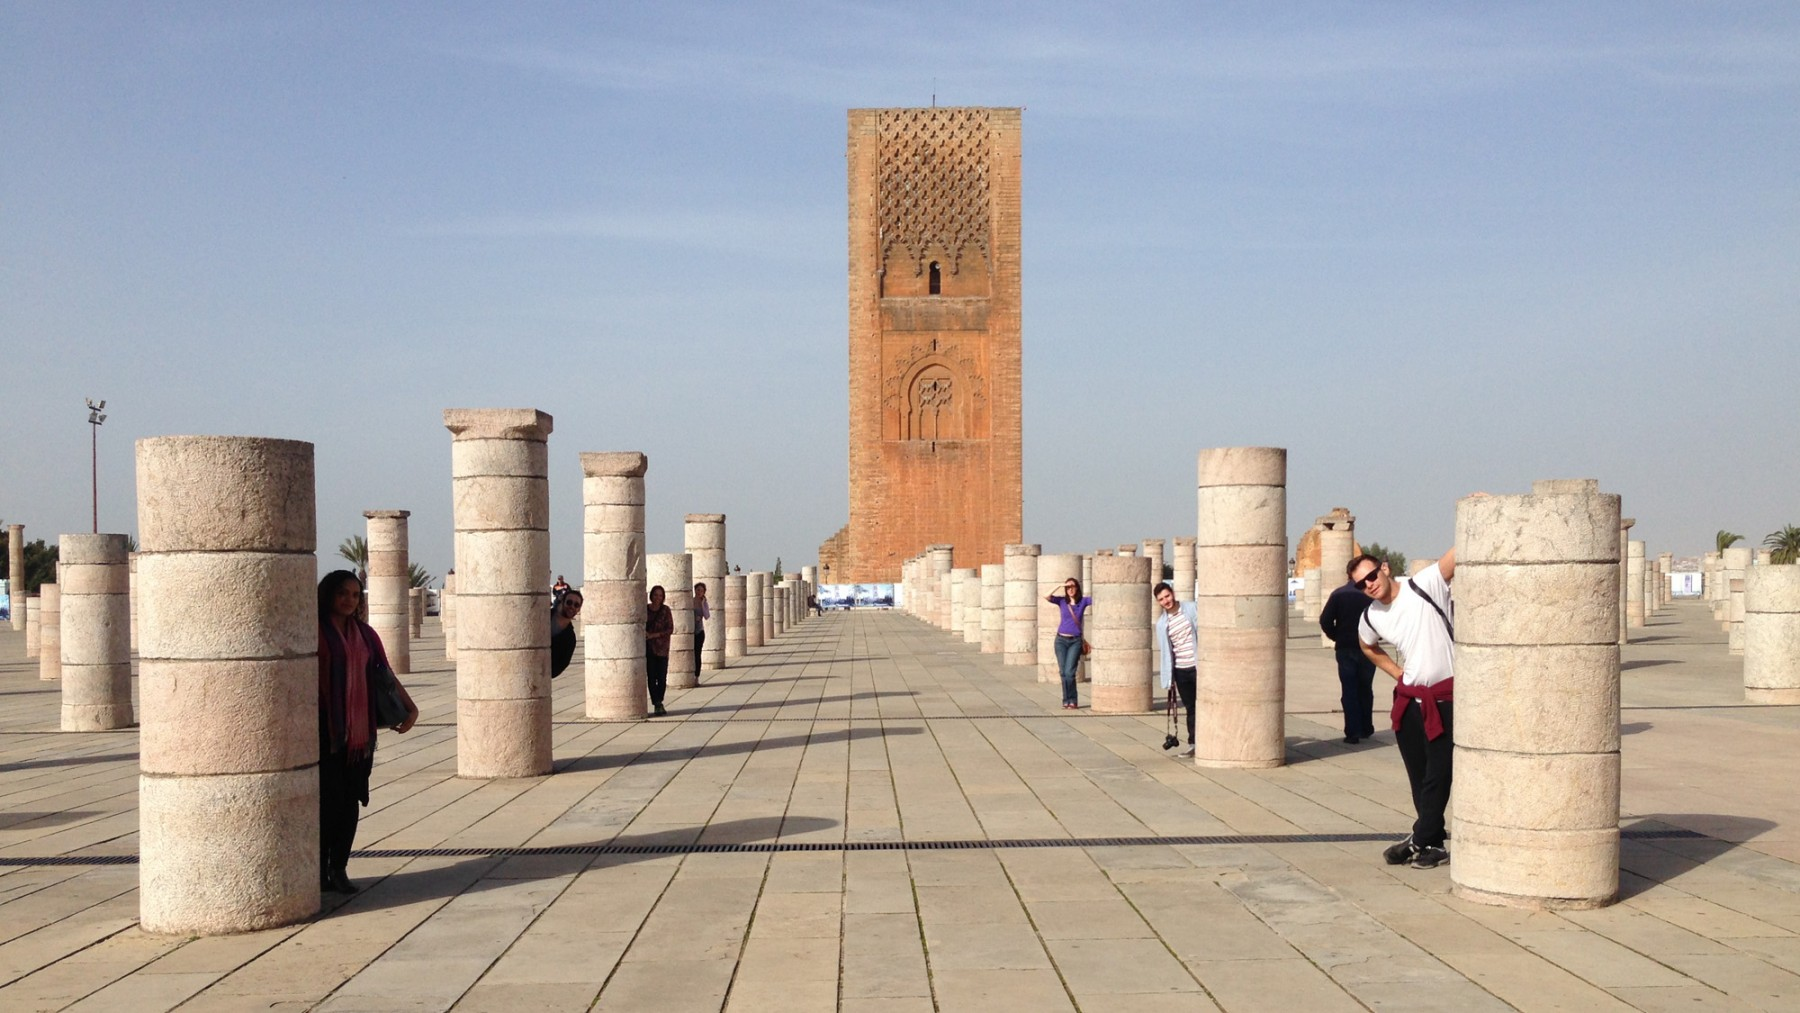 Jamie-Fobert-Architects-Fez-Moroccan-palaces-Architectural-research-trip